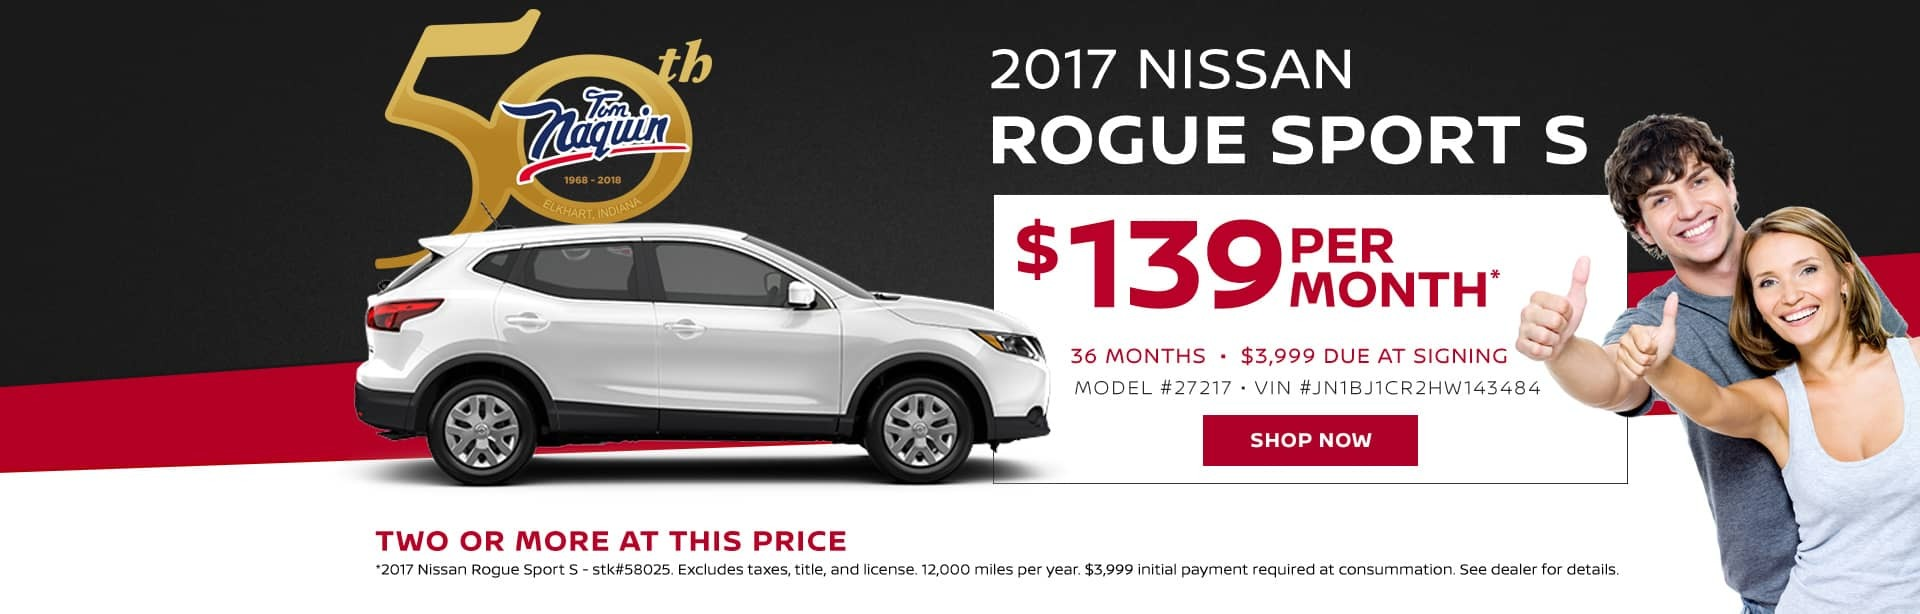 Nissan Rogue Sport at Tom Naquin Nissan